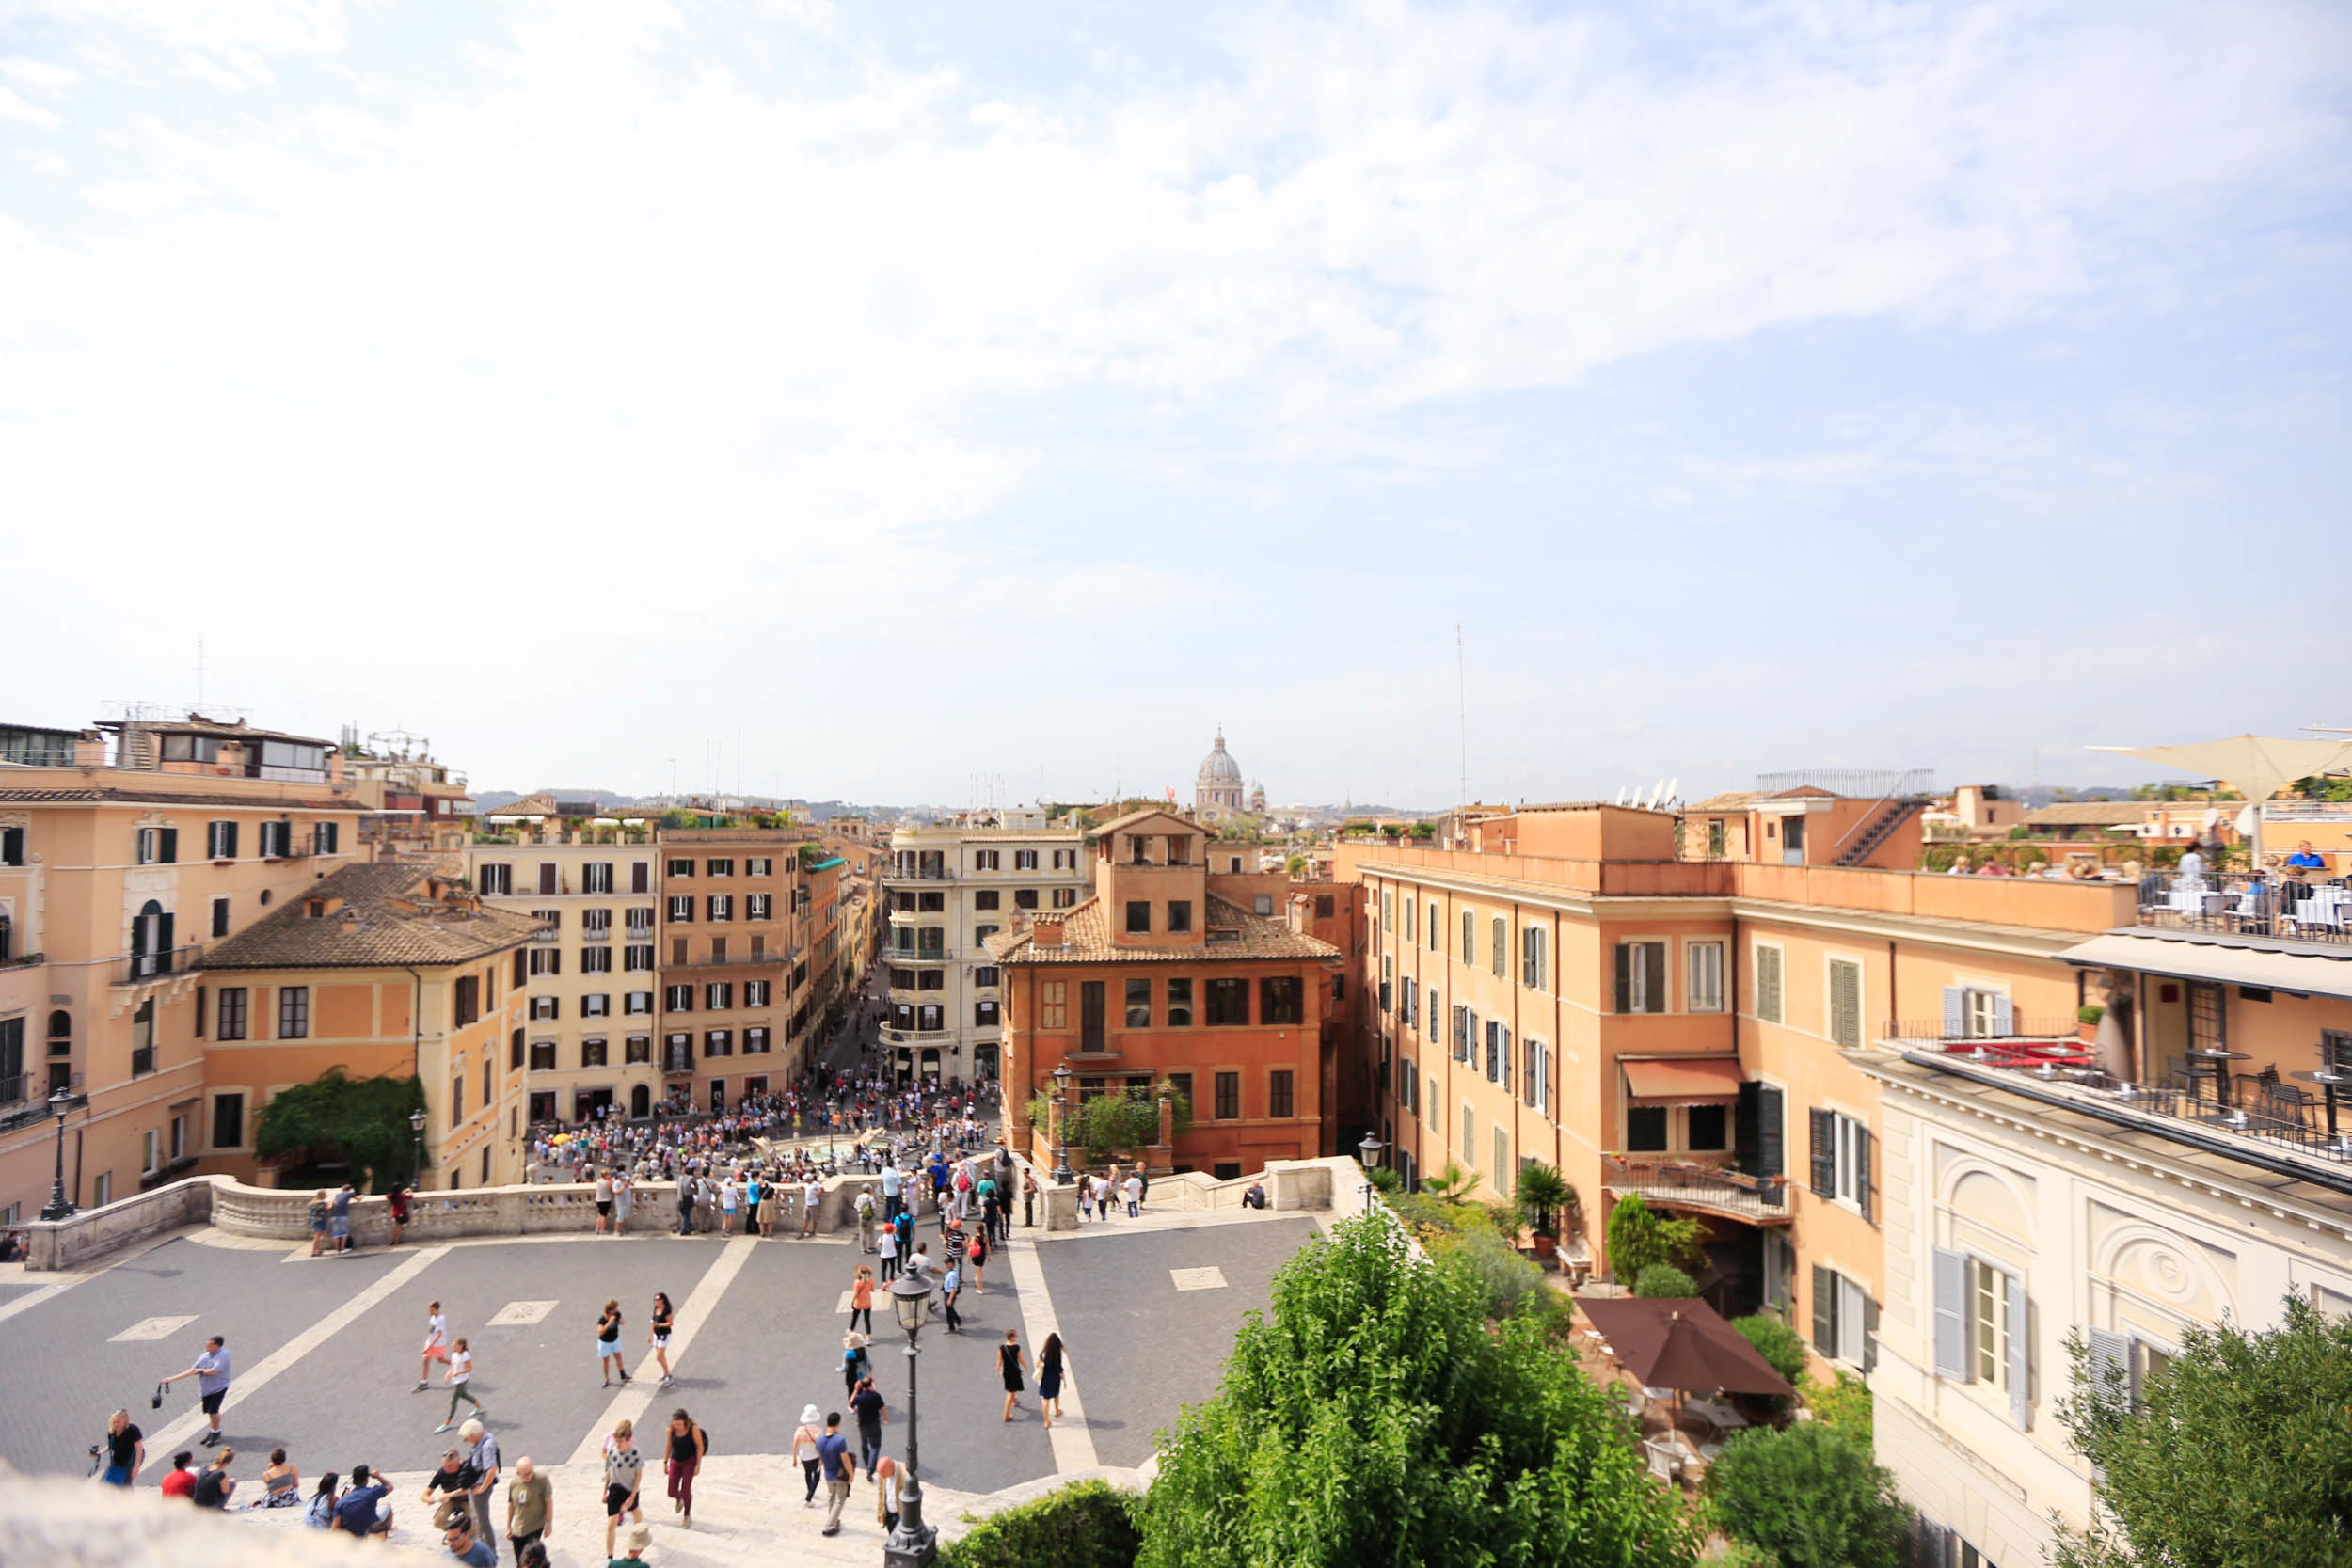 The view from above the Spanish Steps